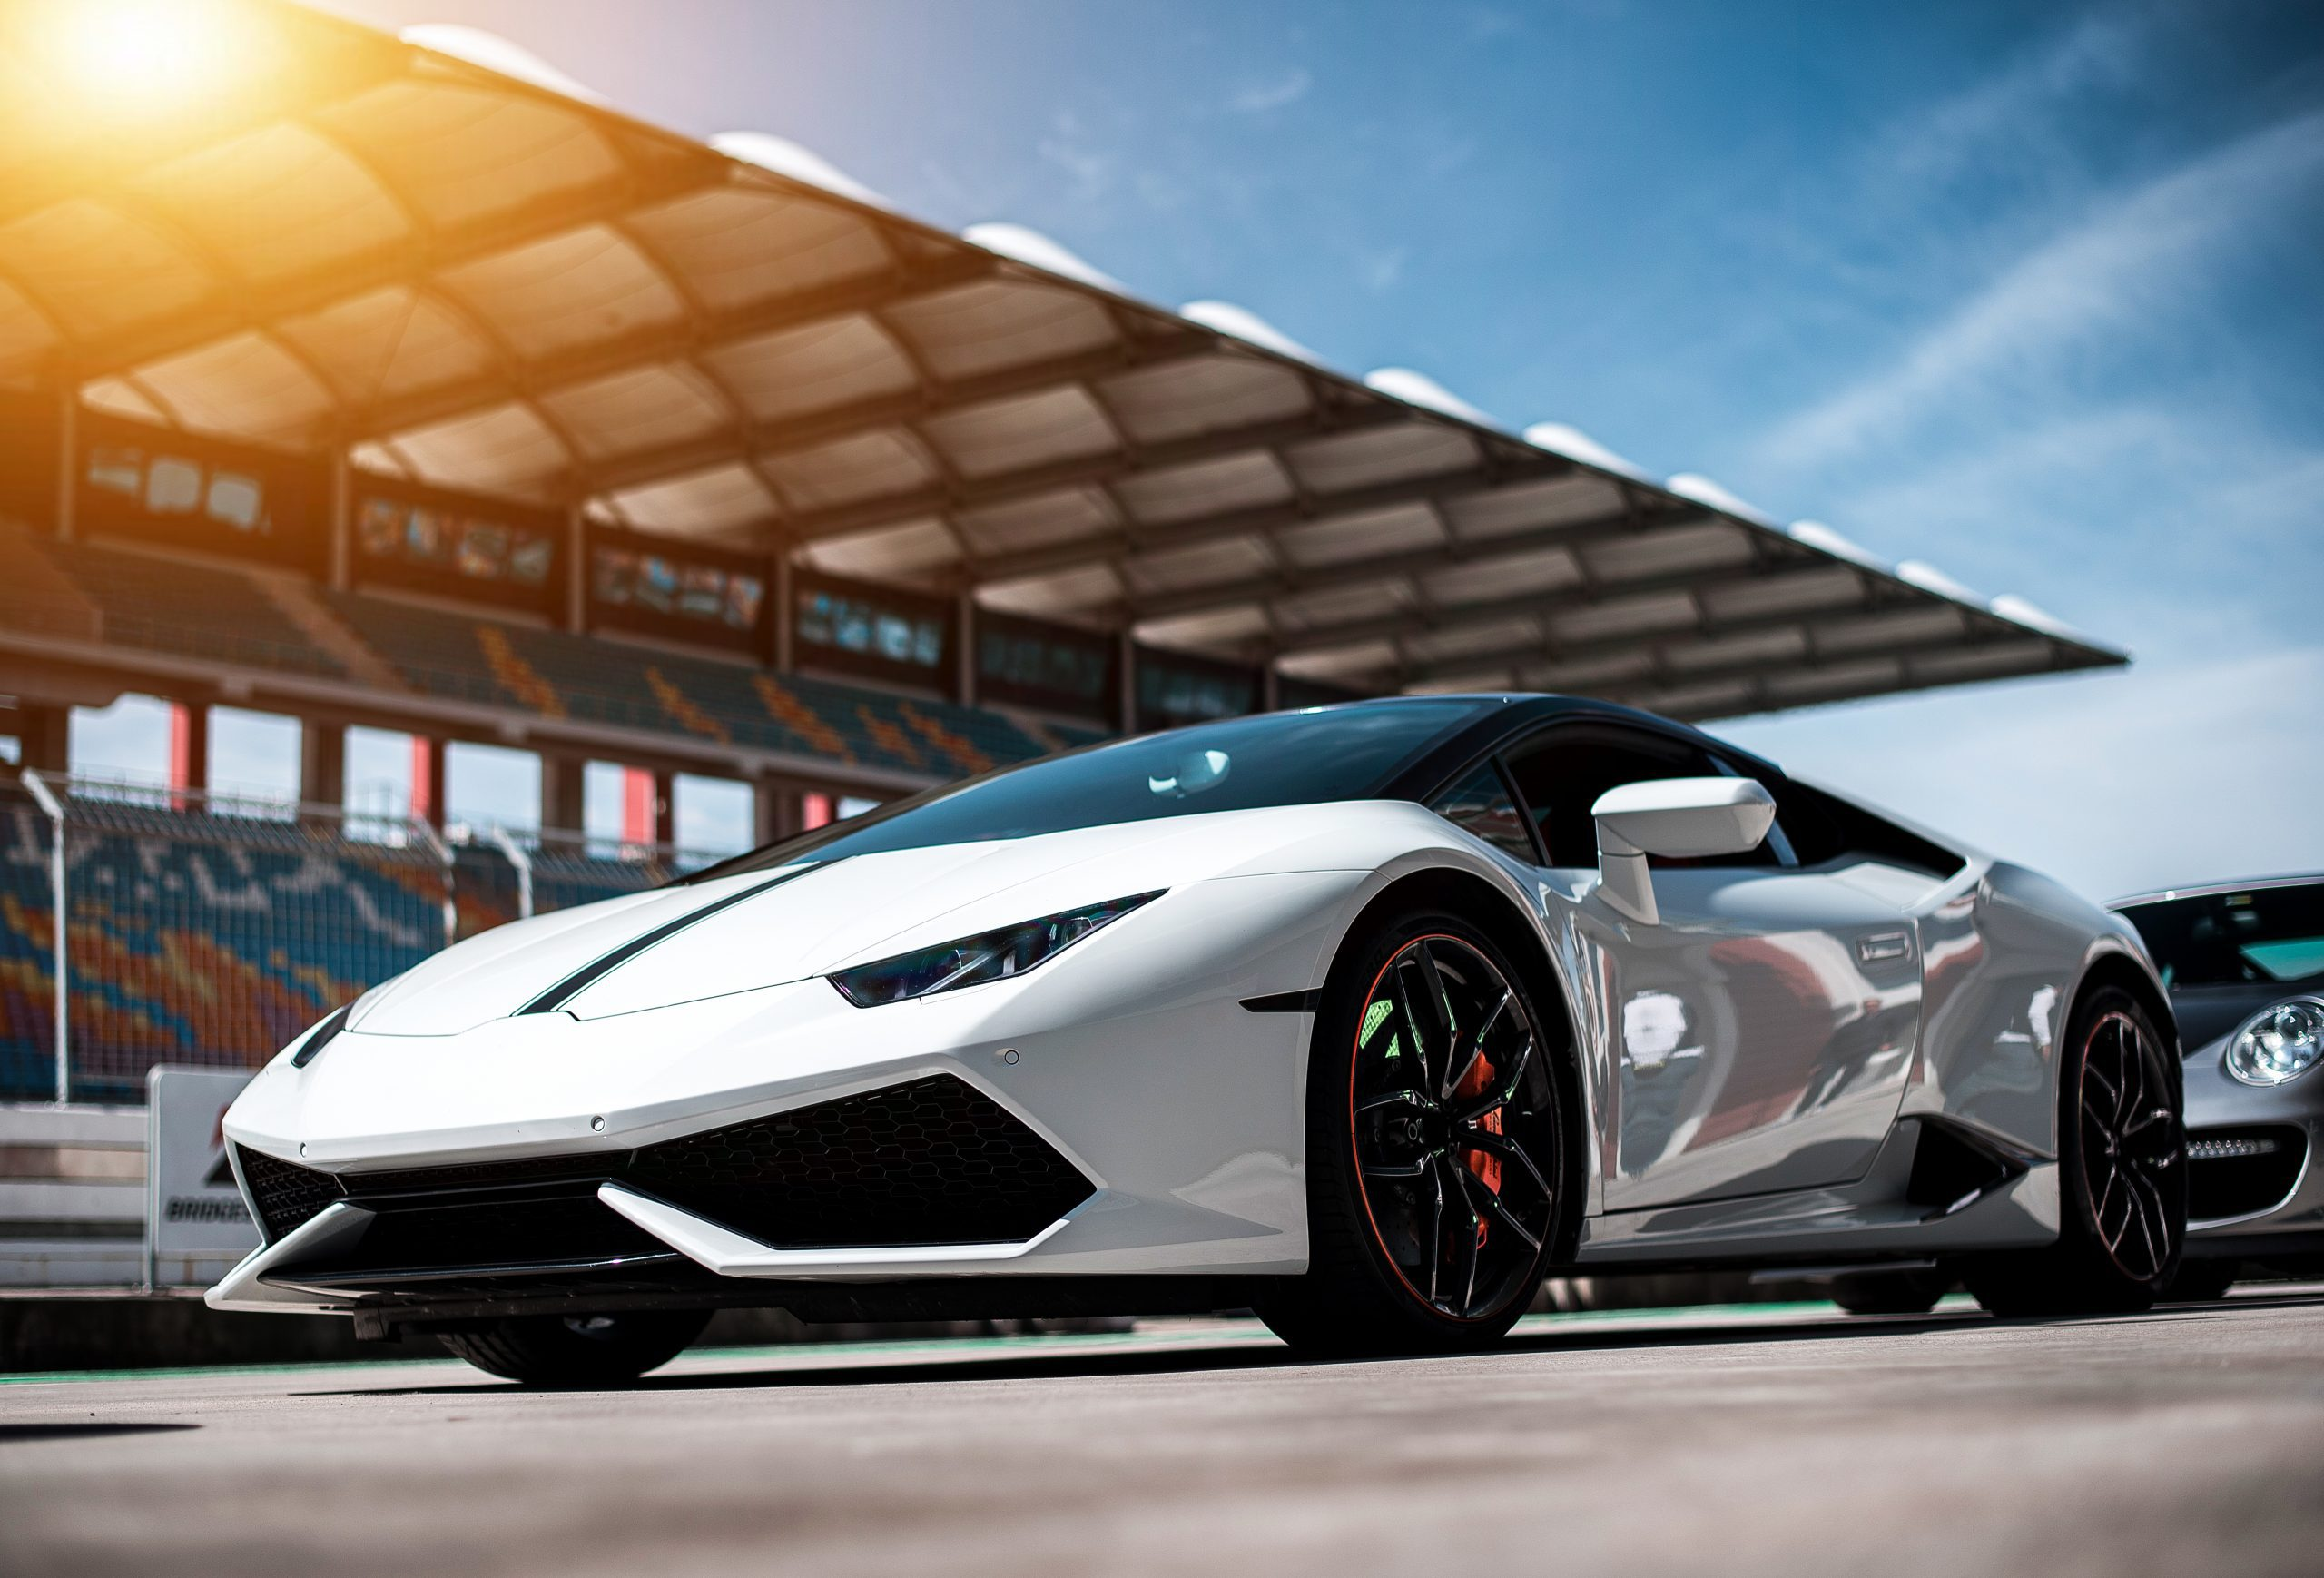 The downside of buying an exotic Supercar